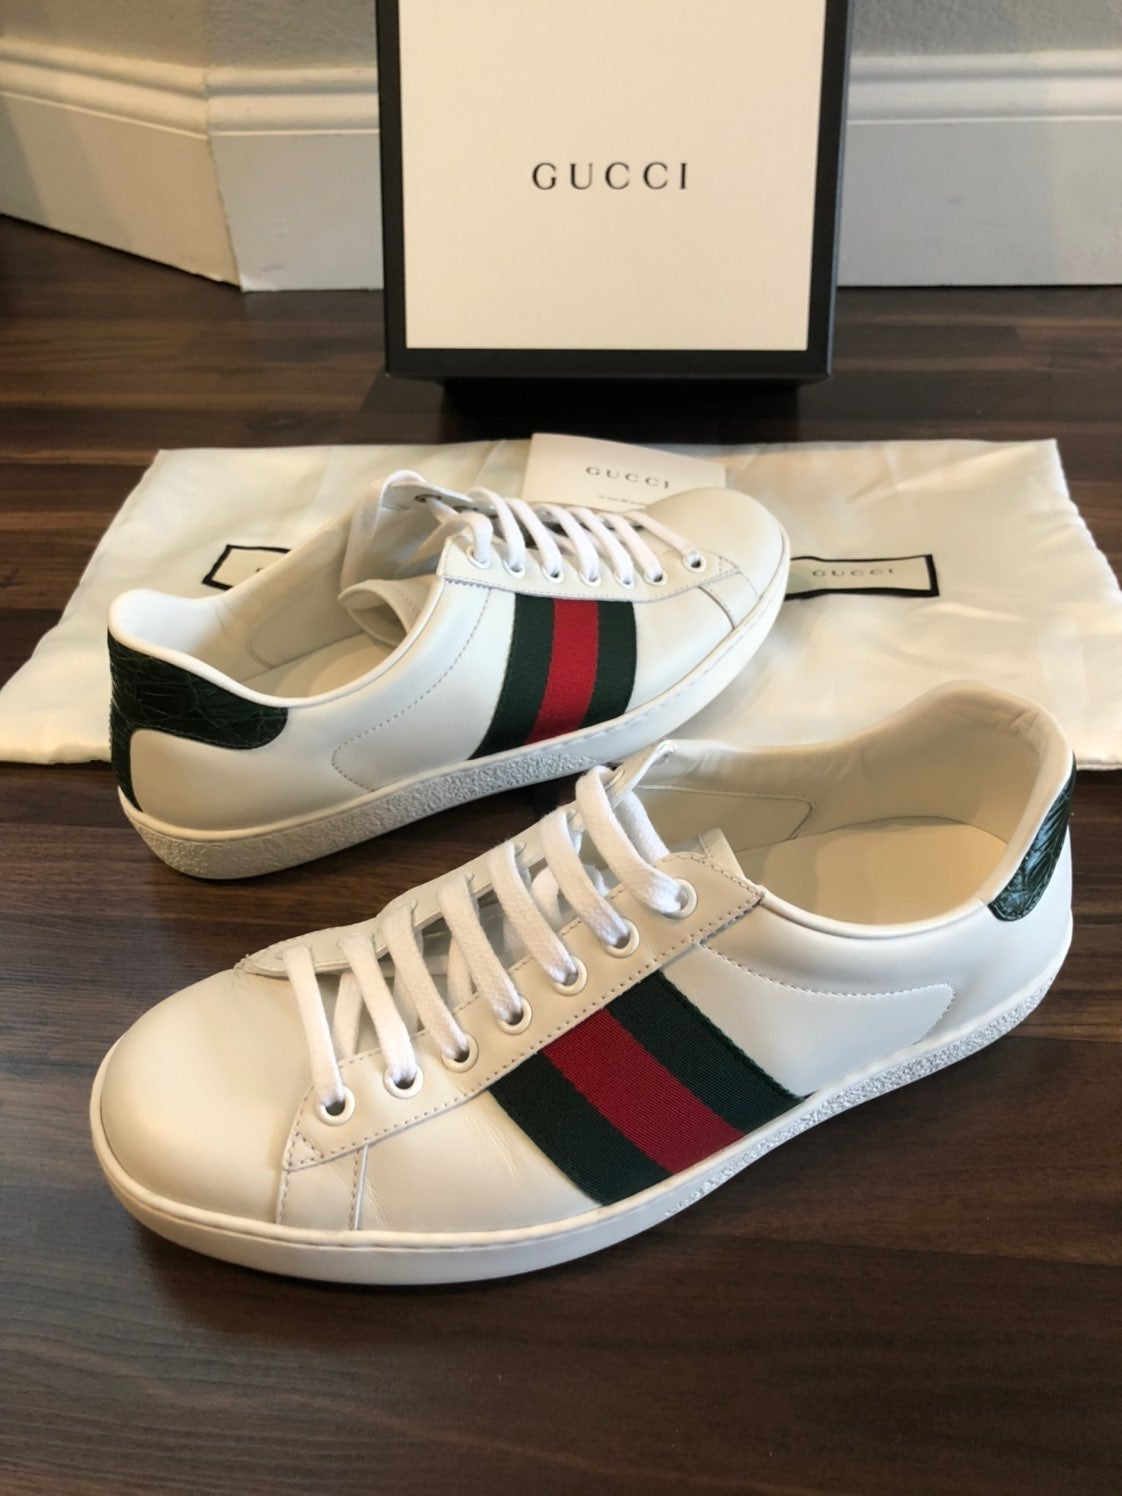 Mens Authentic Gucci Ace sneakers size 6